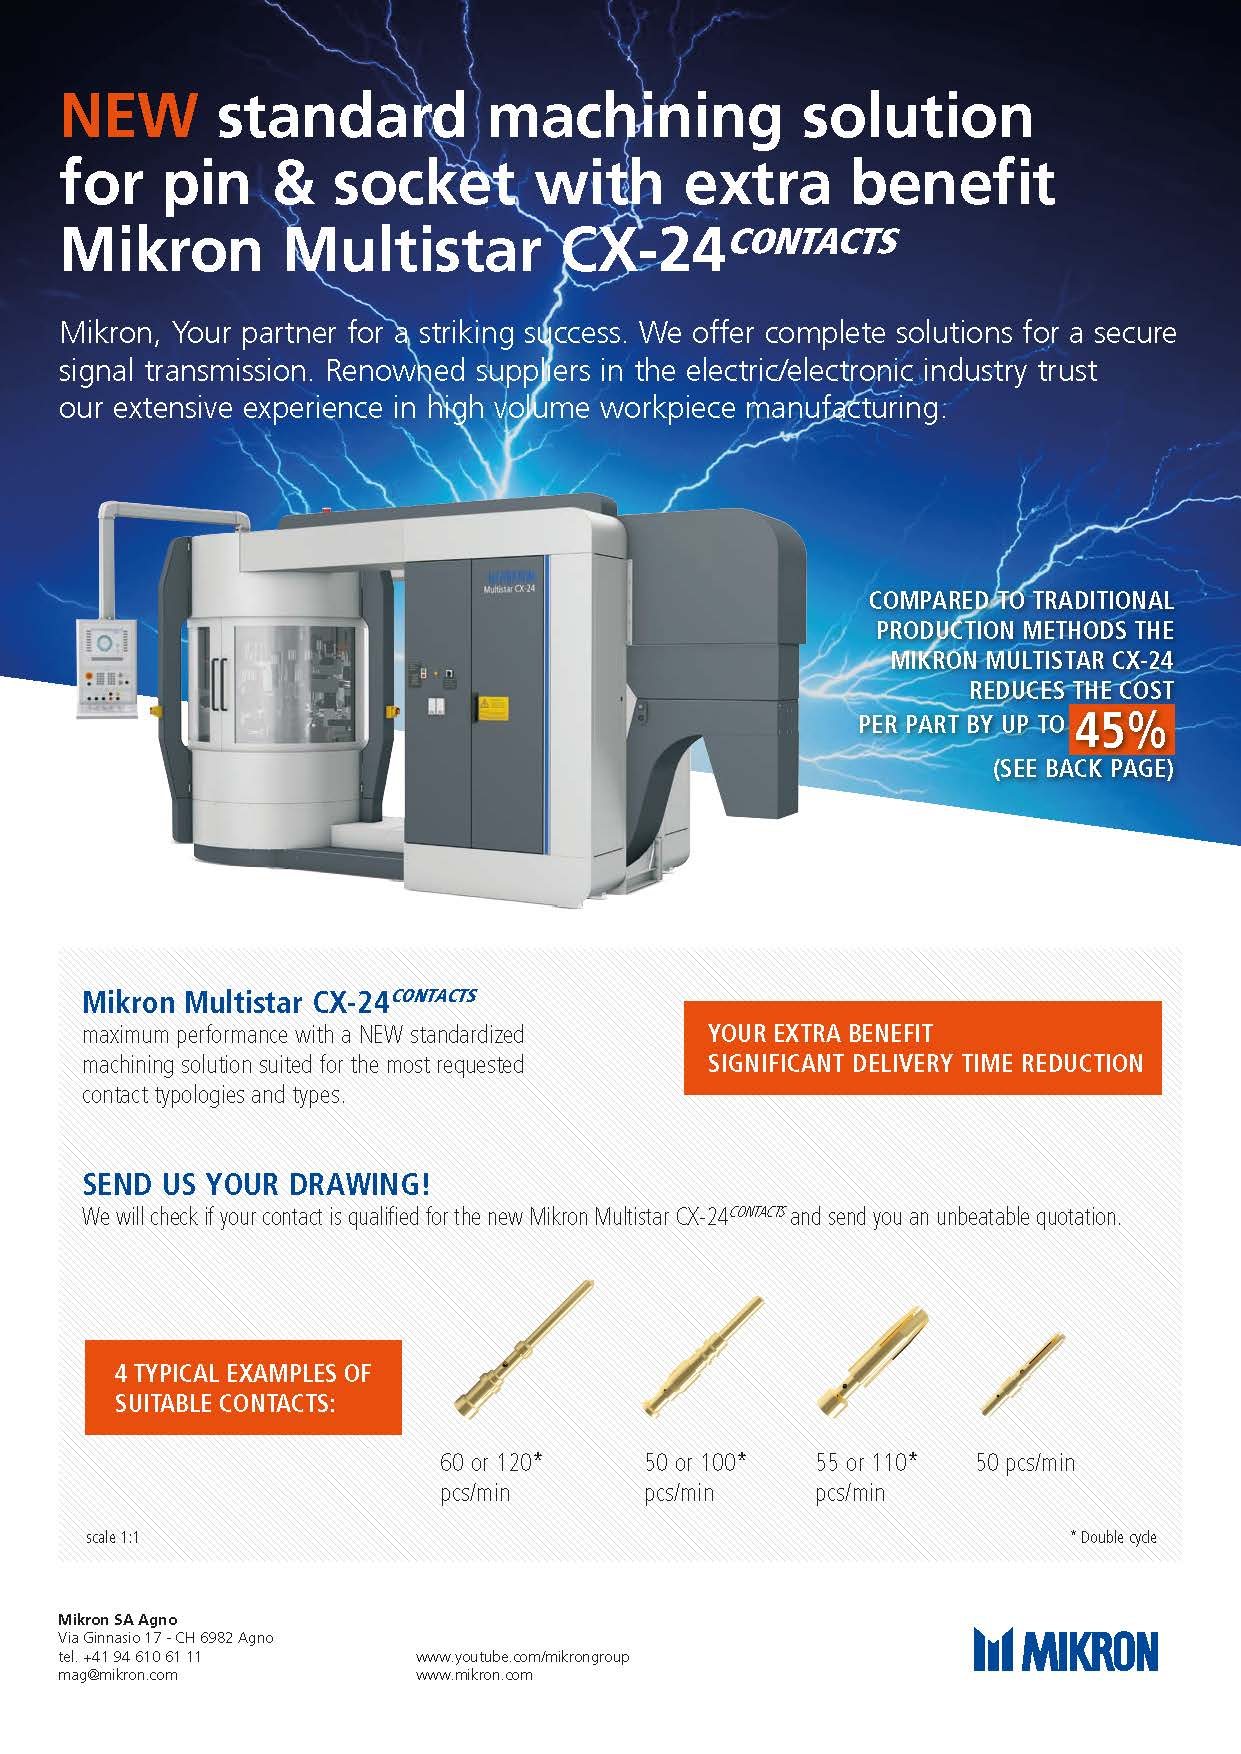 fileadmin/user_upload/03mikron_machining/downloads/MI_CX-24_Contacts/200127_Mikron_connector_campaign_Flyer_EN_Seite_1.jpg